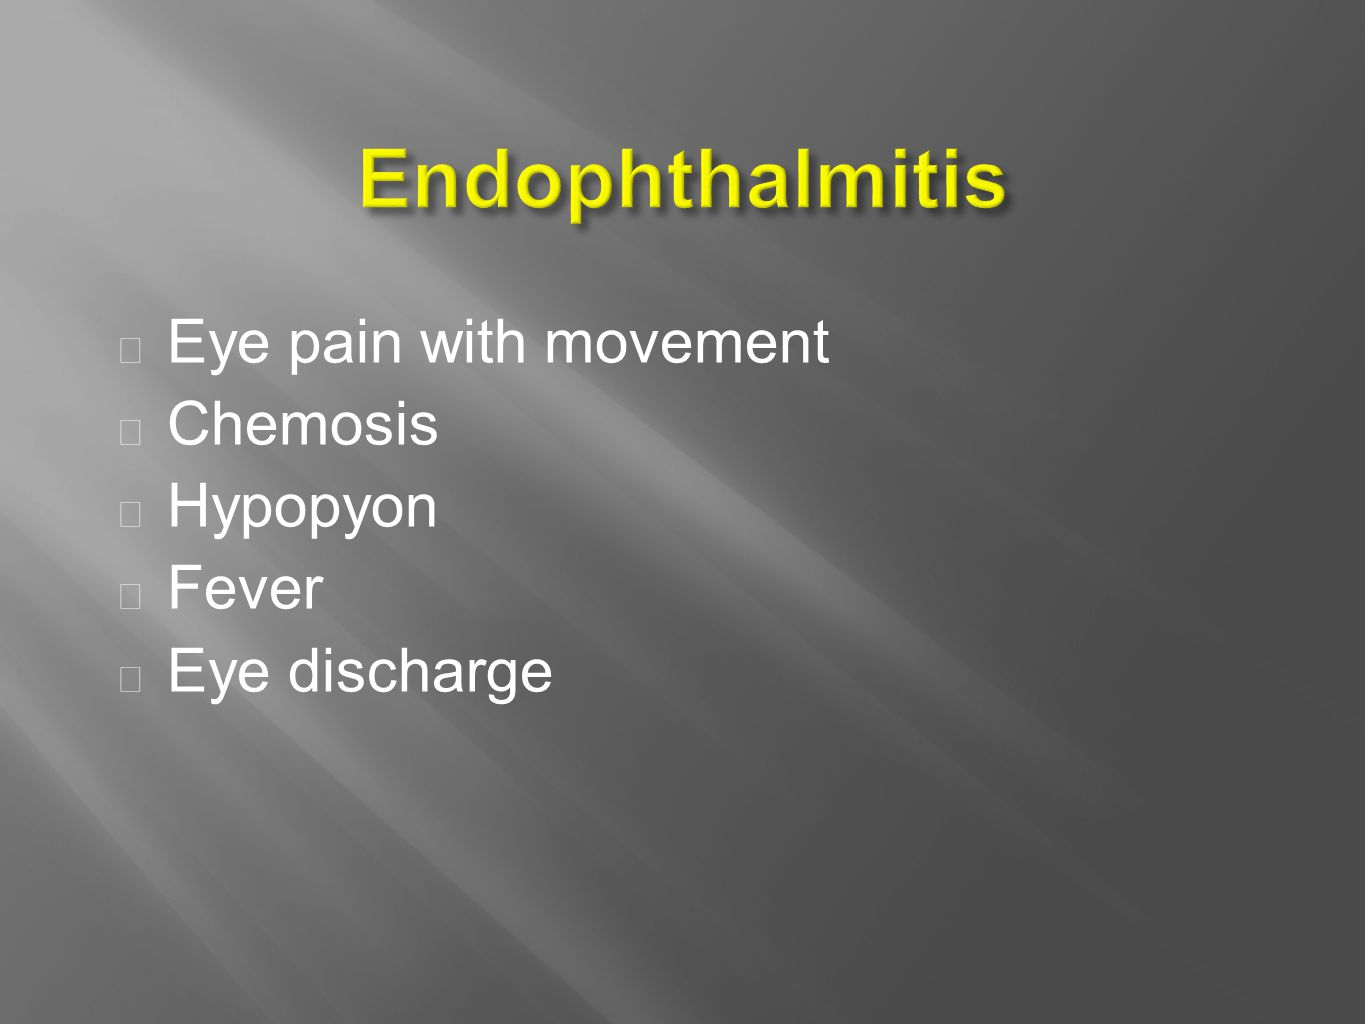  Eye pain with movement  Chemosis  Hypopyon  Fever  Eye discharge